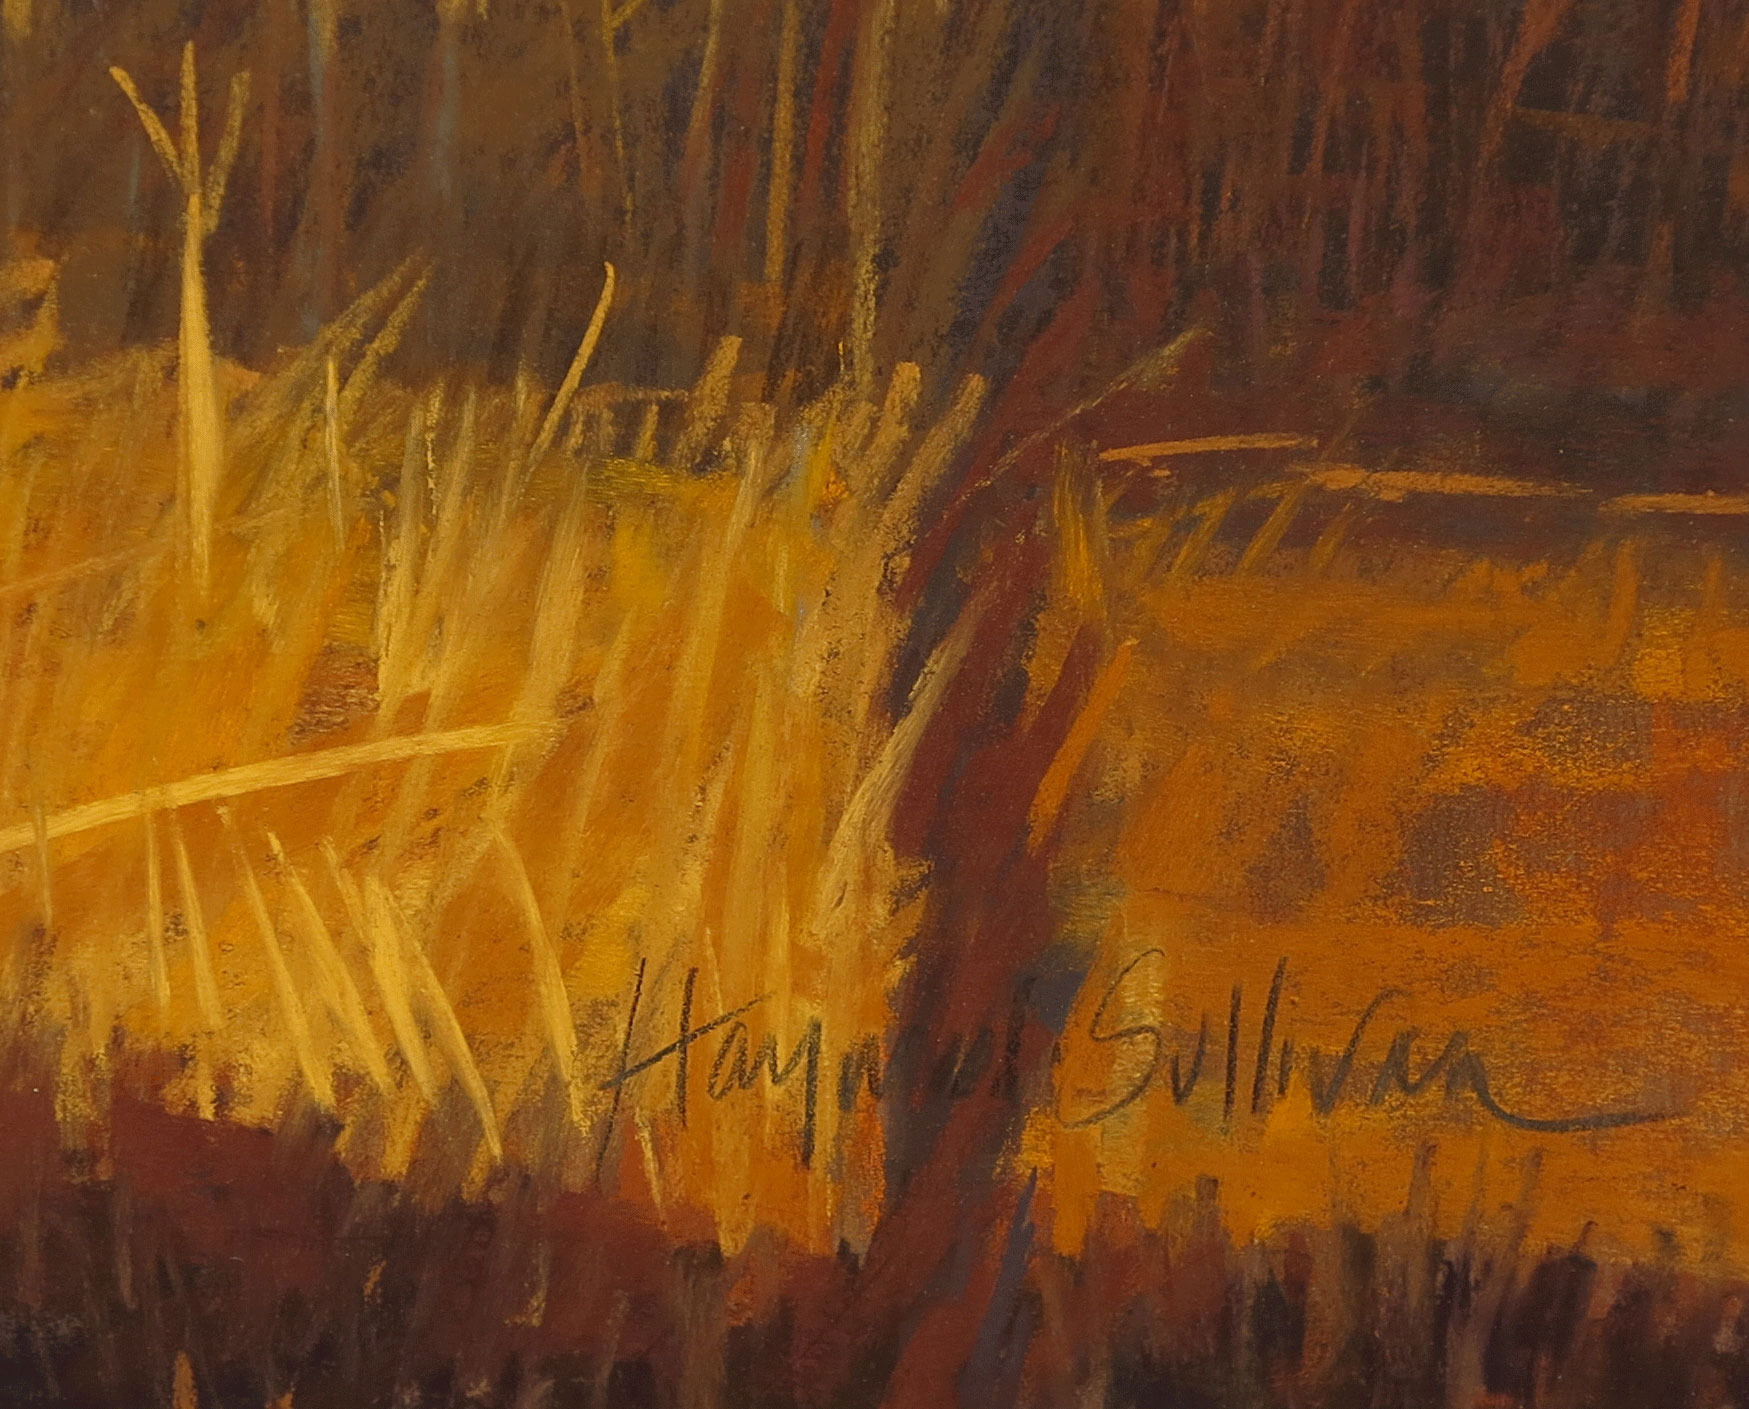 Haywood sullivan 35631 detail 1